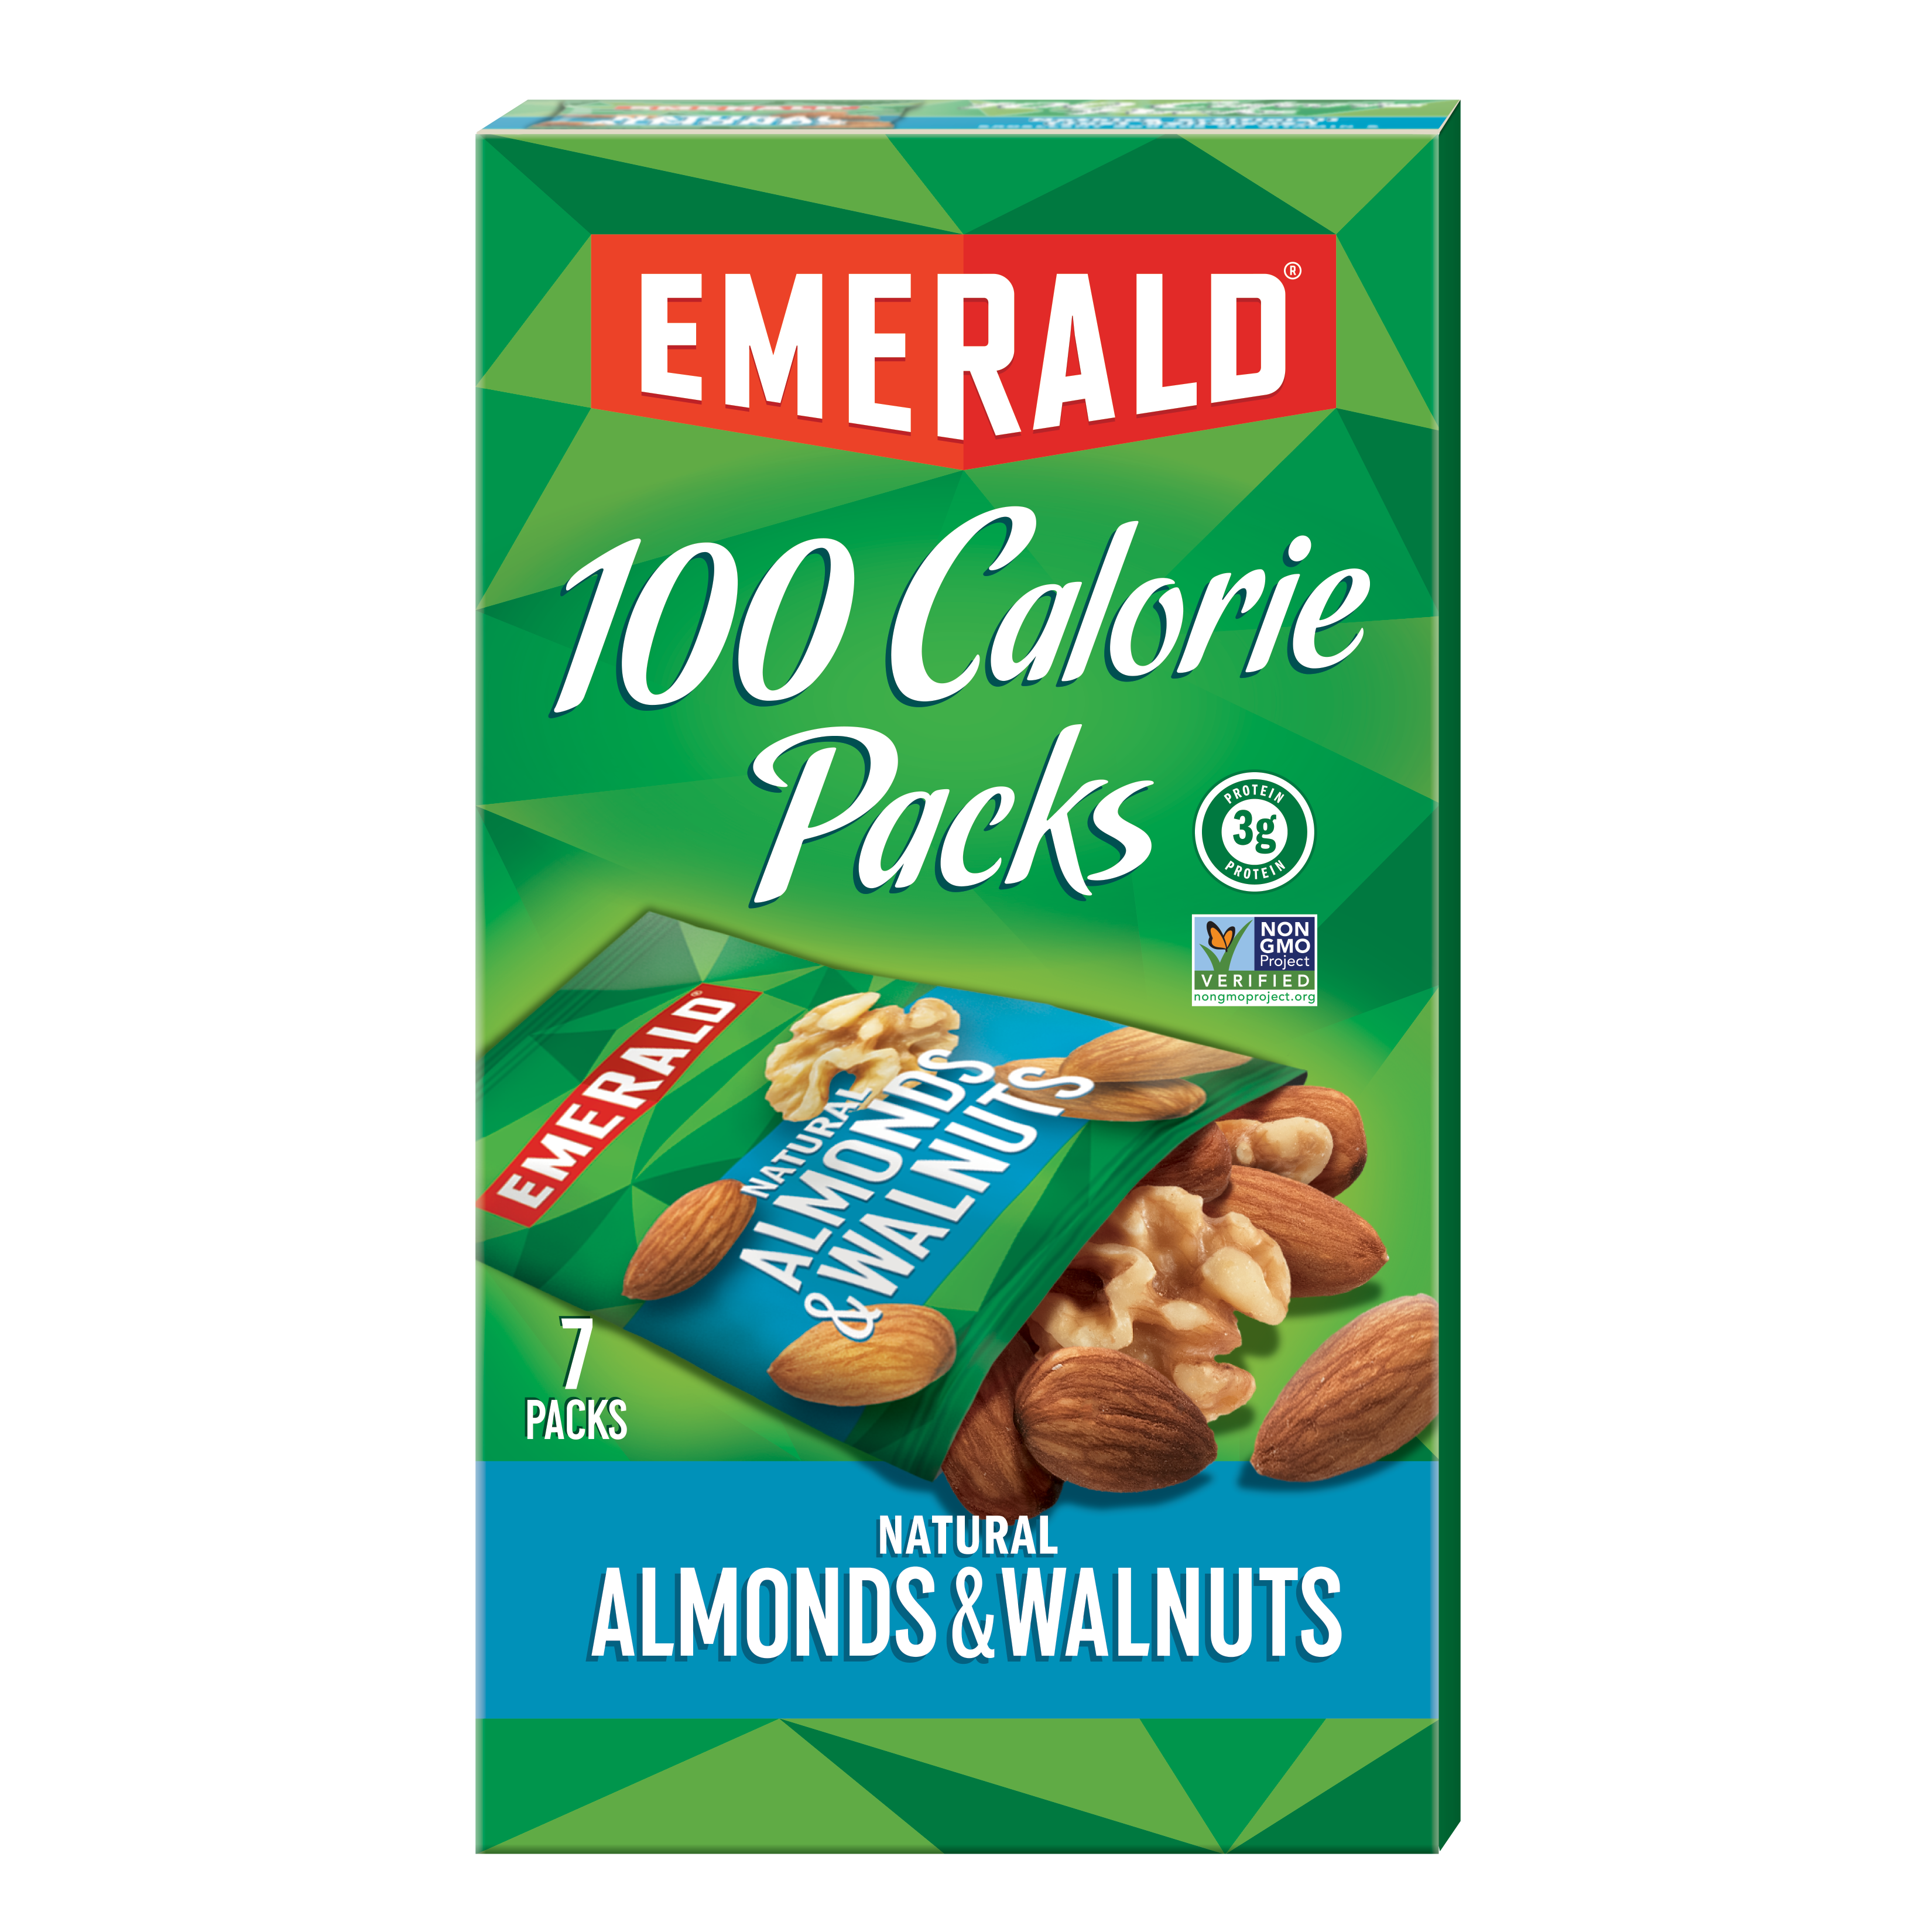 Emerald 100 Calorie Walnuts and Almonds, 0.56 Oz, 7 Ct